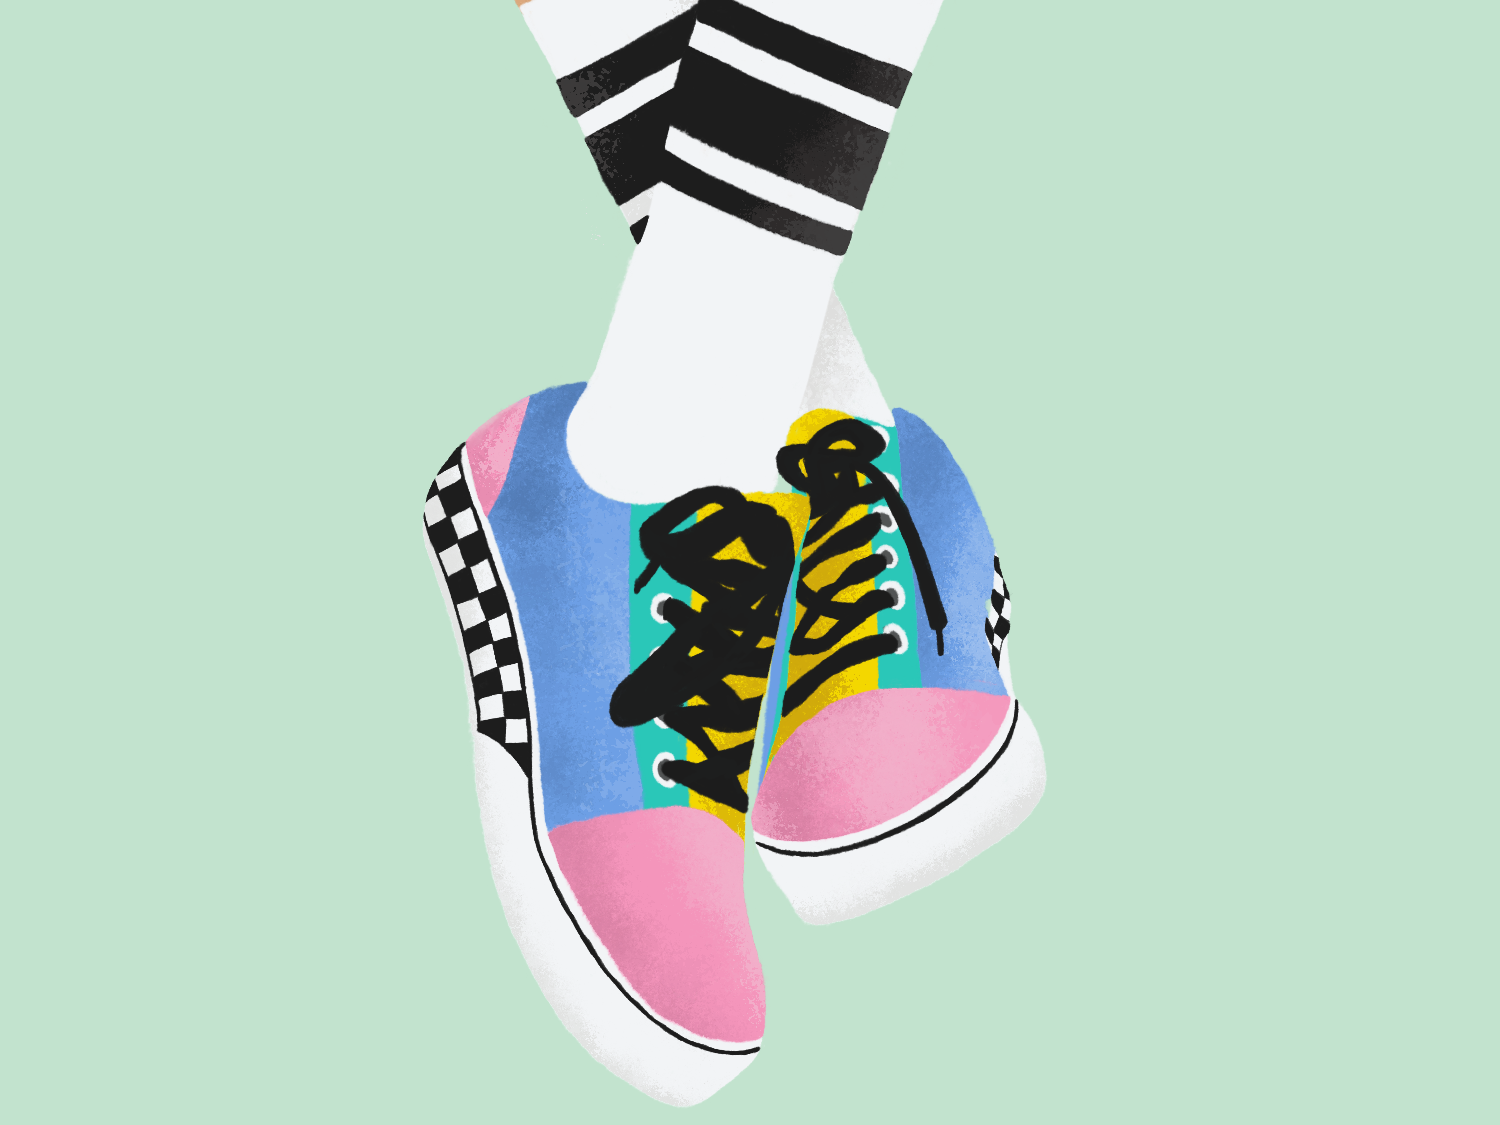 Old Skool Vans branding bright vector illustration graphic art